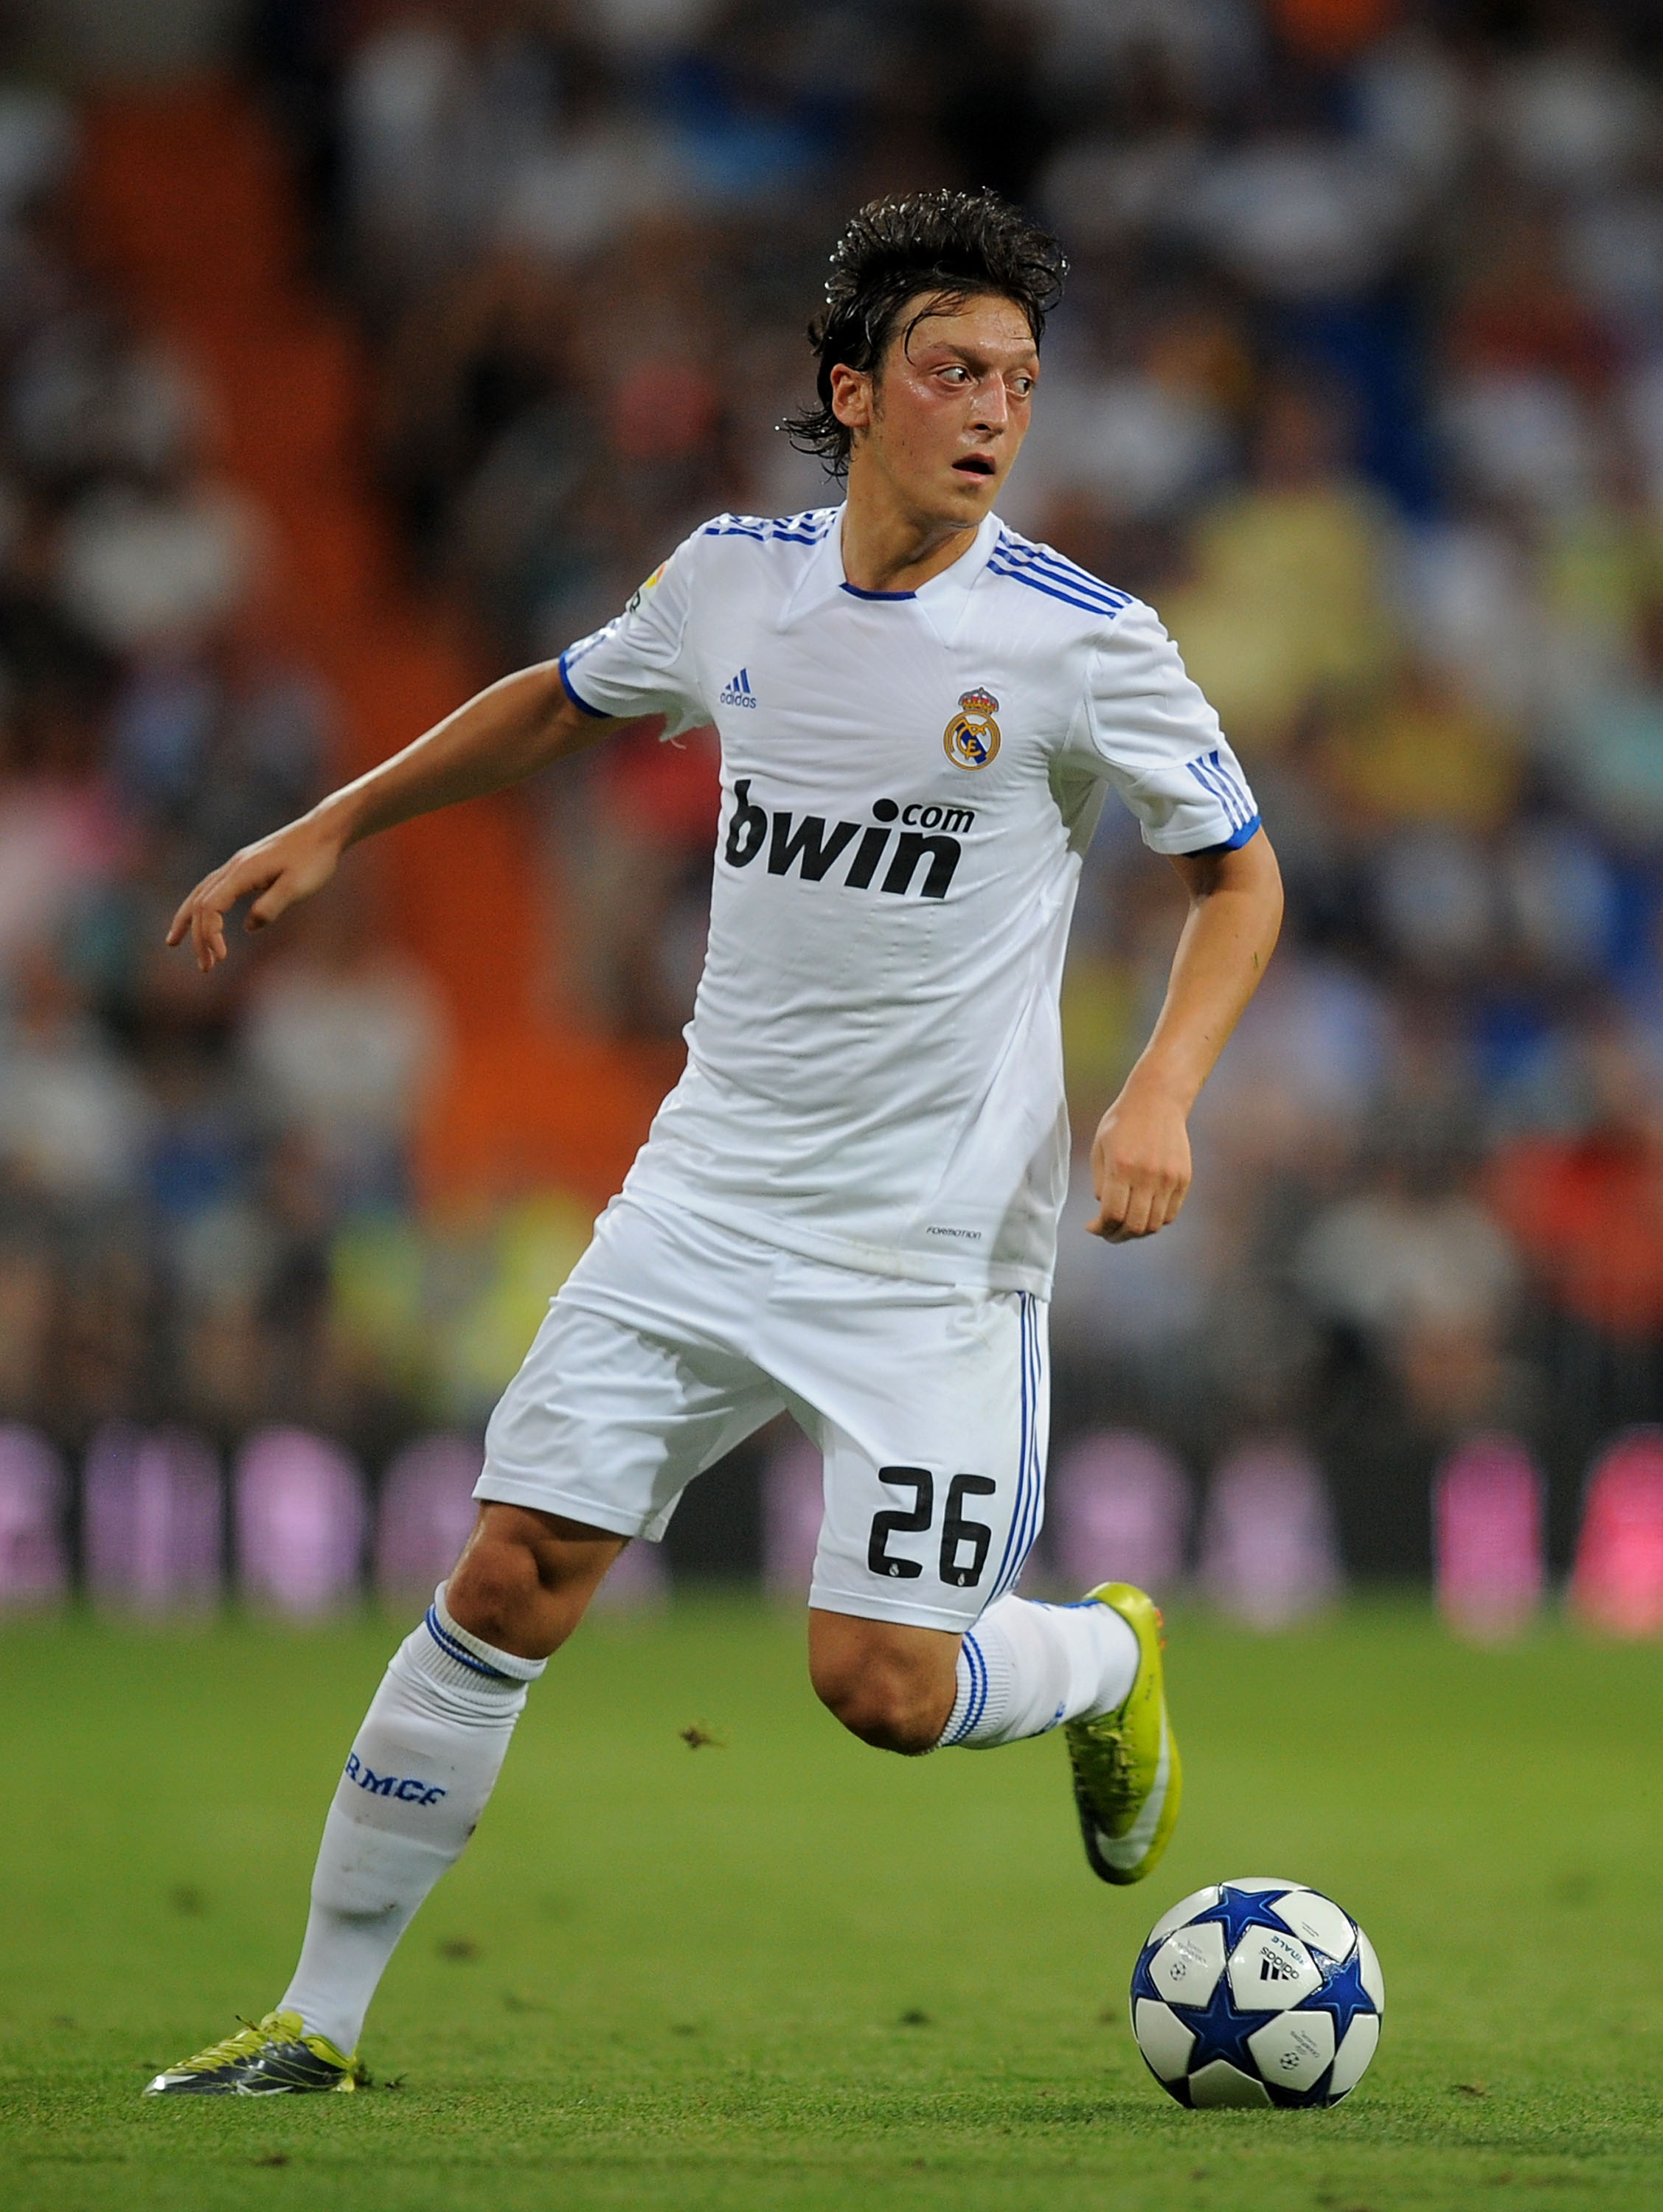 MADRID, SPAIN - AUGUST 24:  Mesut Ozil of Real Madrid in action during the Santiago Bernabeu Trophy match between Real Madrid and Penarol at the Santiago Bernabeu stadium on August 24, 2010 in Madrid, Spain.  (Photo by Denis Doyle/Getty Images)